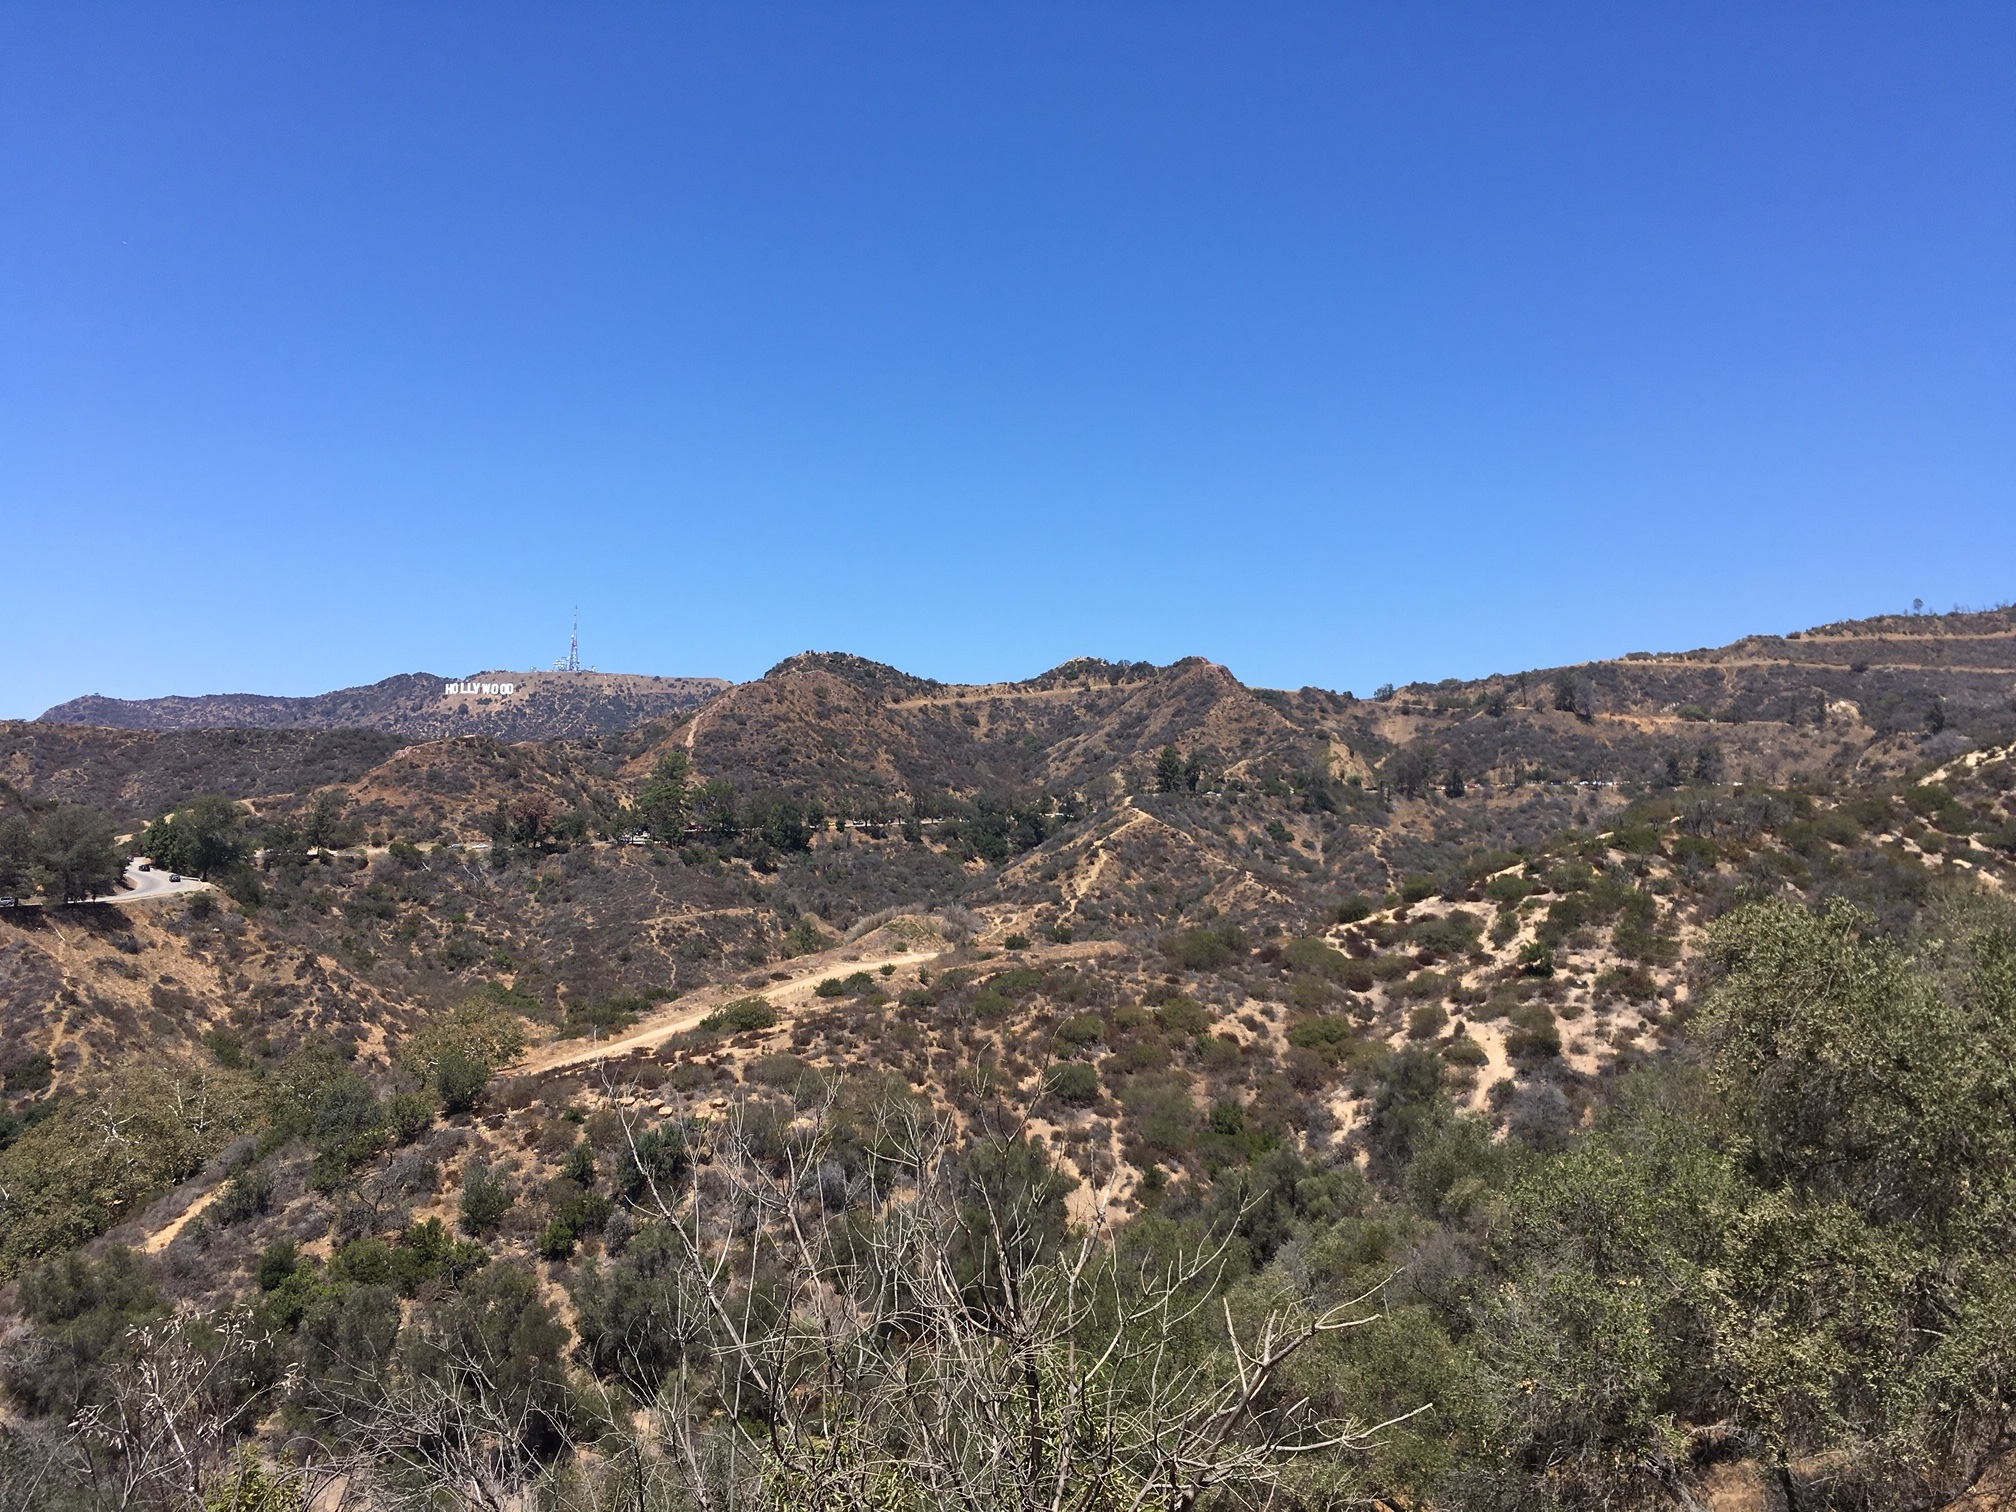 Views of the Hollywood Sign